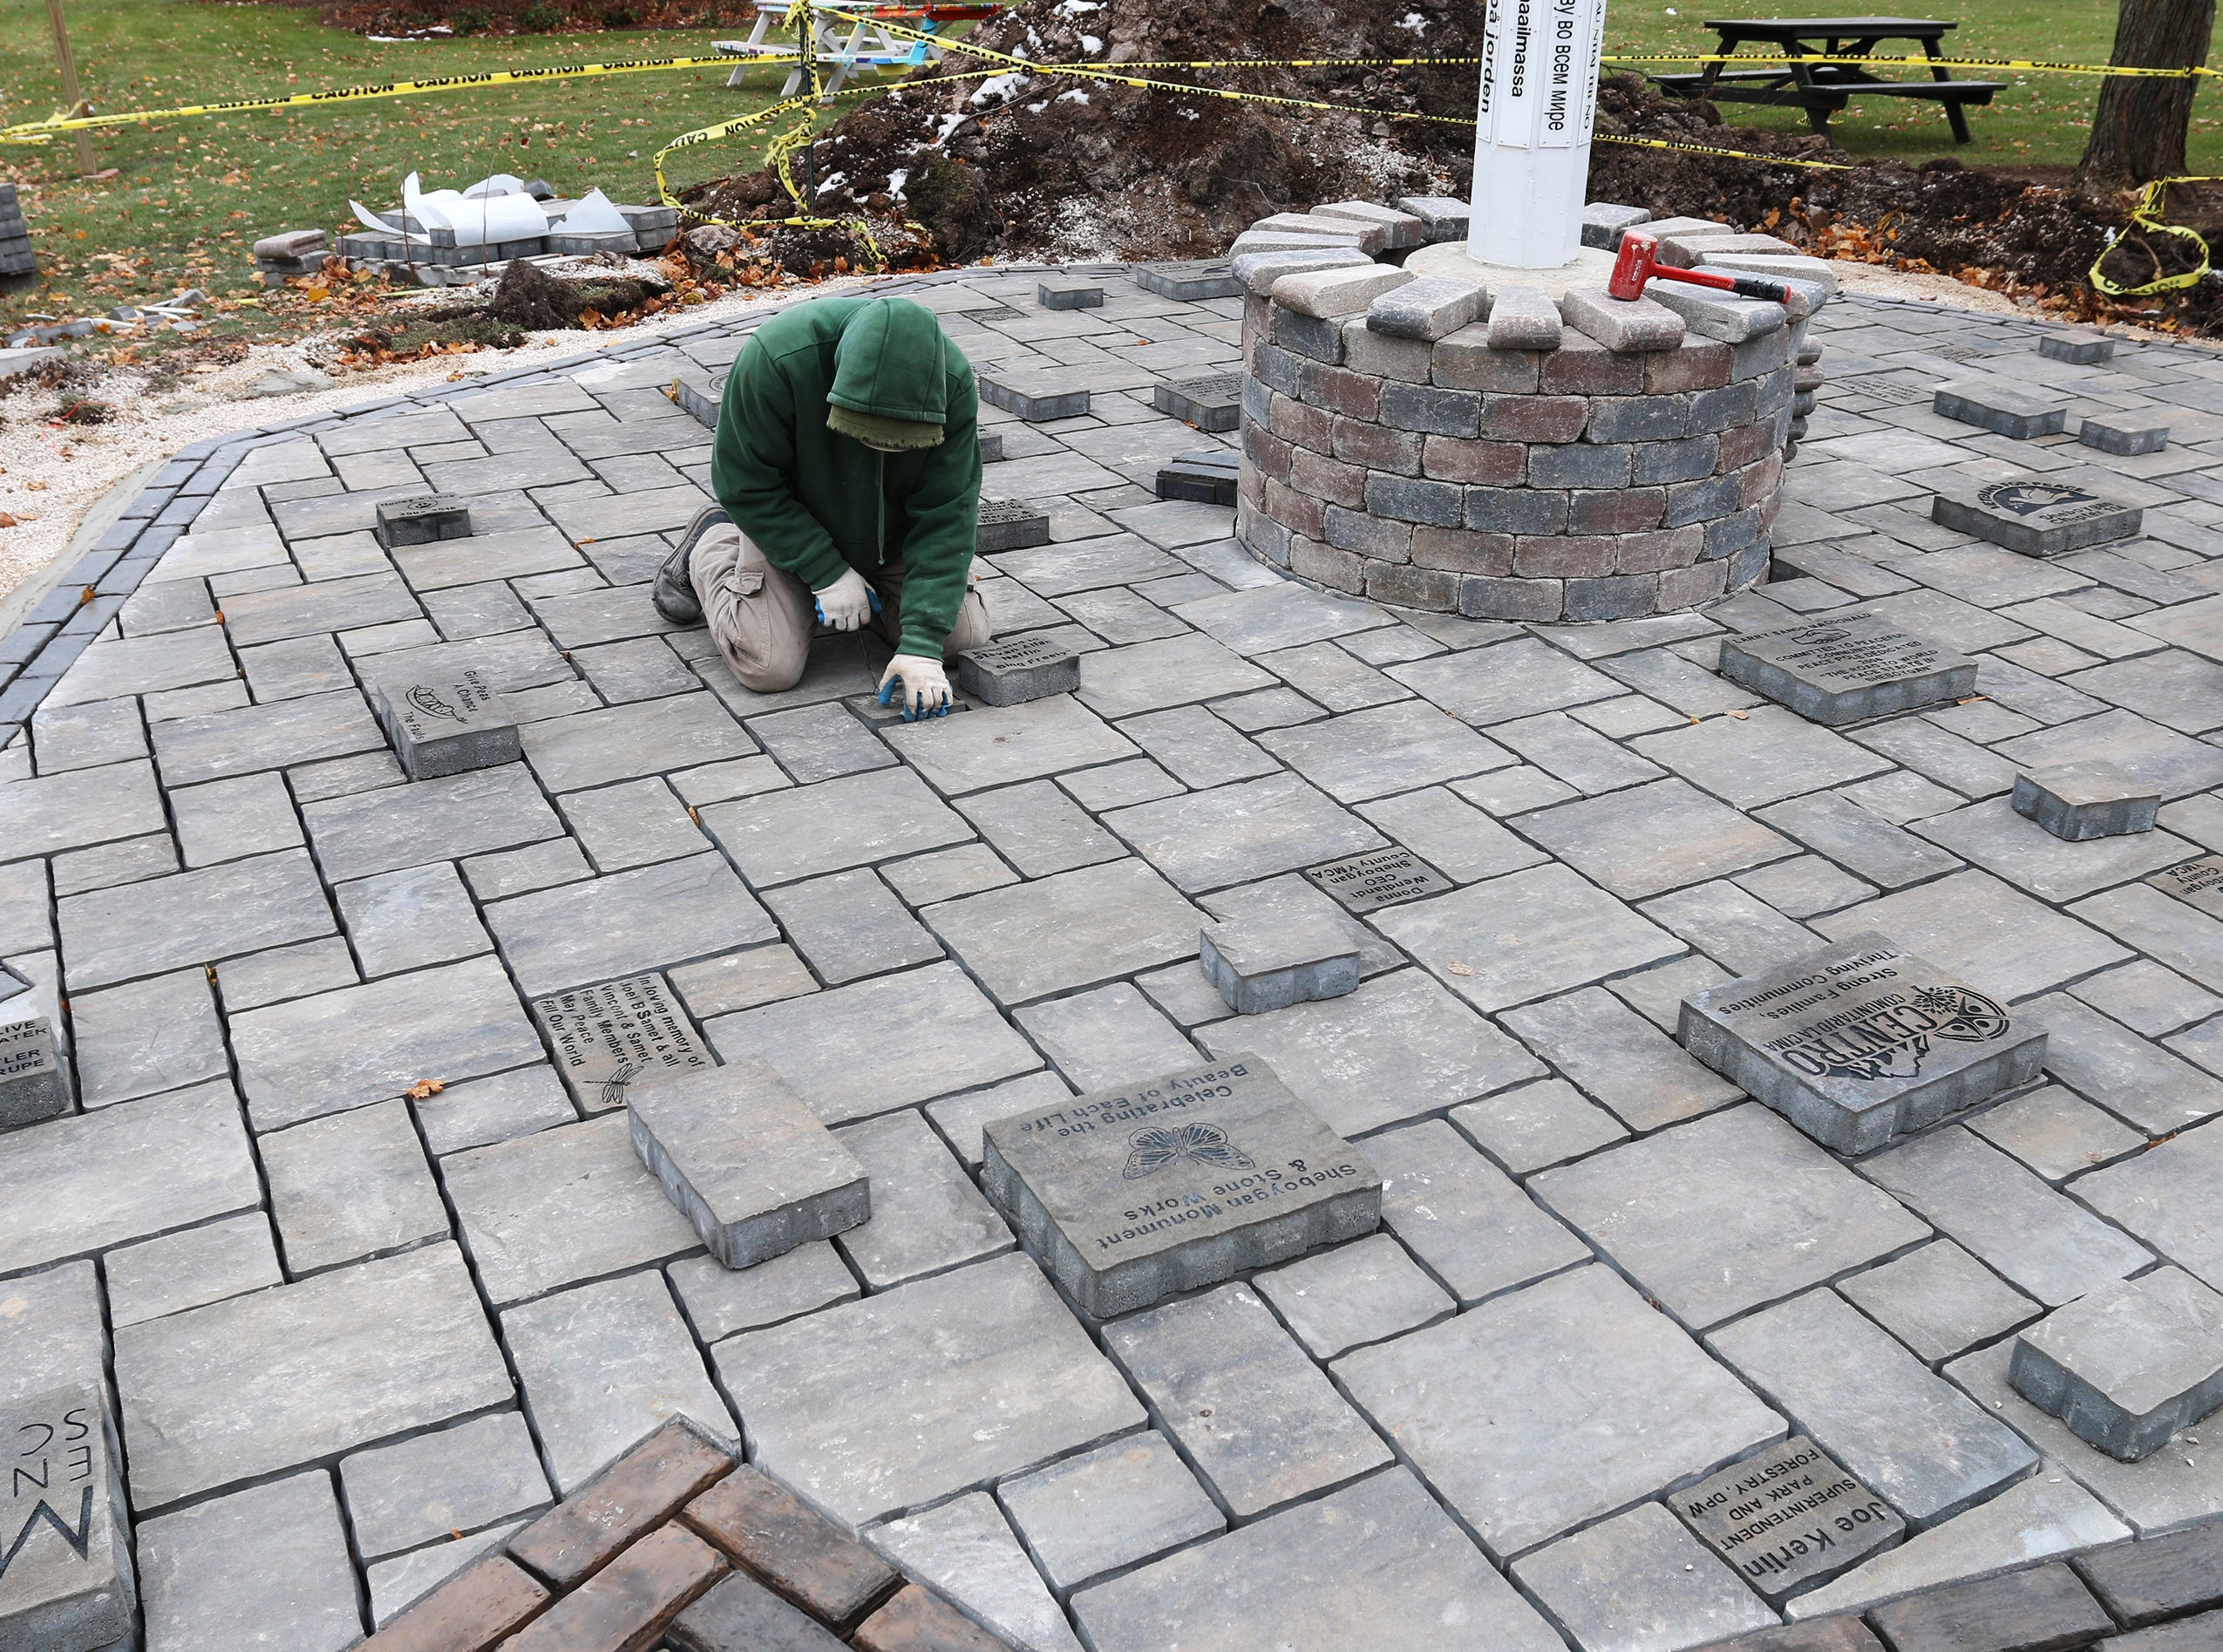 Bricklayer Mike Prahl, in green, installs engraved paver blocks for the first phase of renovations slated for Sheboygan Peace Park, Friday, November 16, 2018, in Sheboygan, Wis. For more information go to: https://sheboyganpeacepark.org/